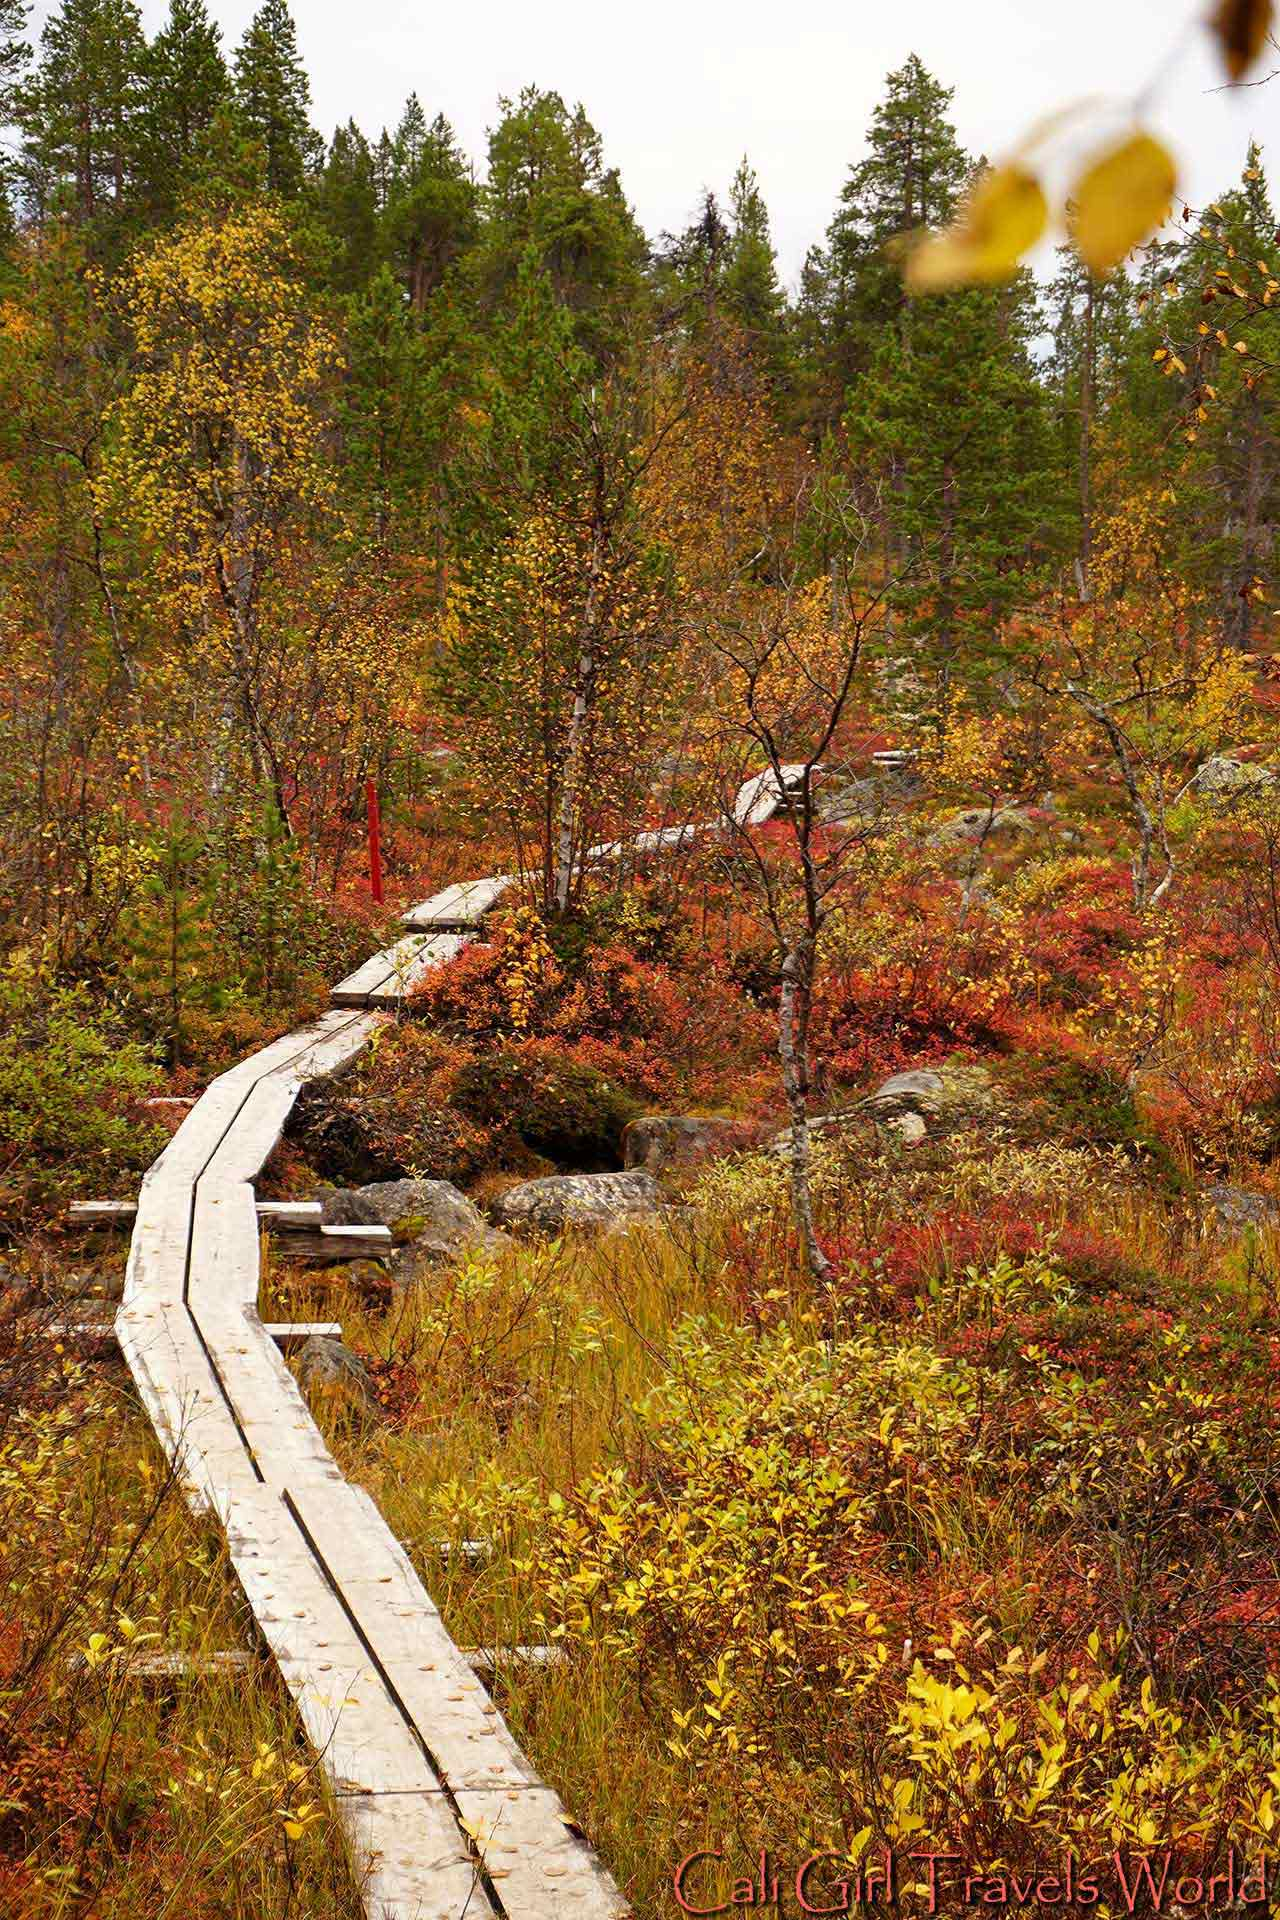 A continuation of a pathway leading into a forest in Lapland surrounded by autumn colors.